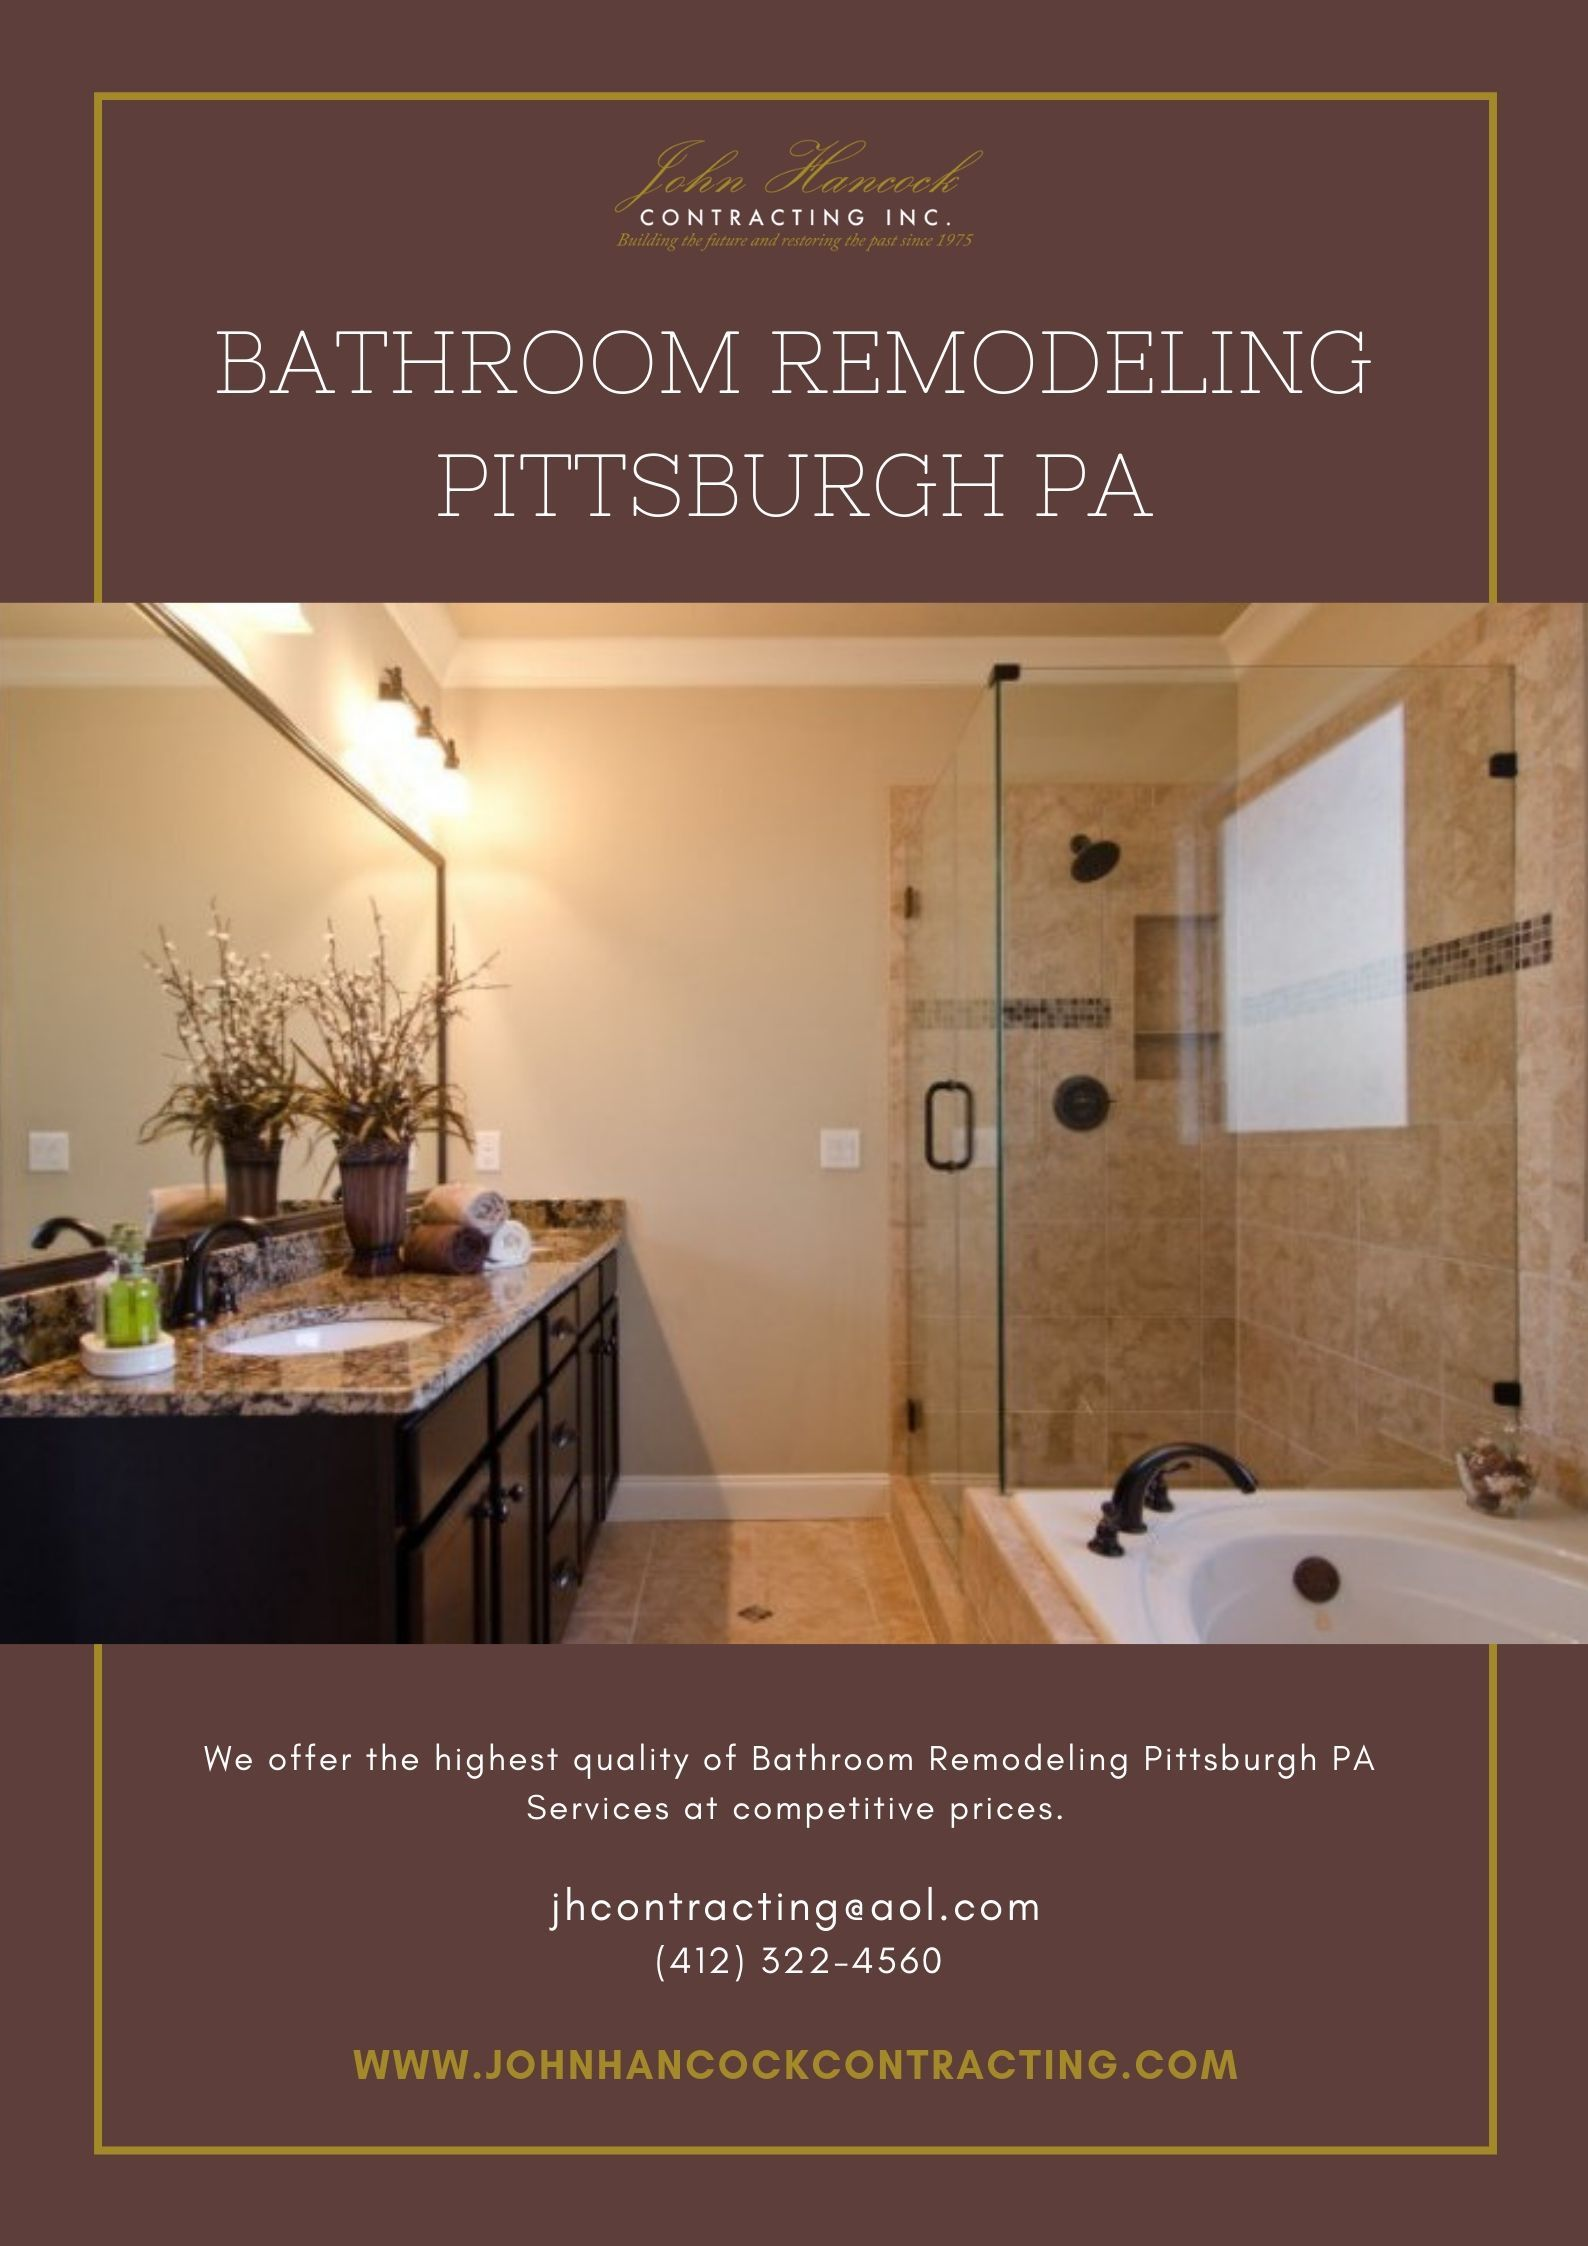 Bathroom Remodeling Pittsburgh Pa Kitchen Bathroom Remodel Remodel Bathroom Remodeling Services